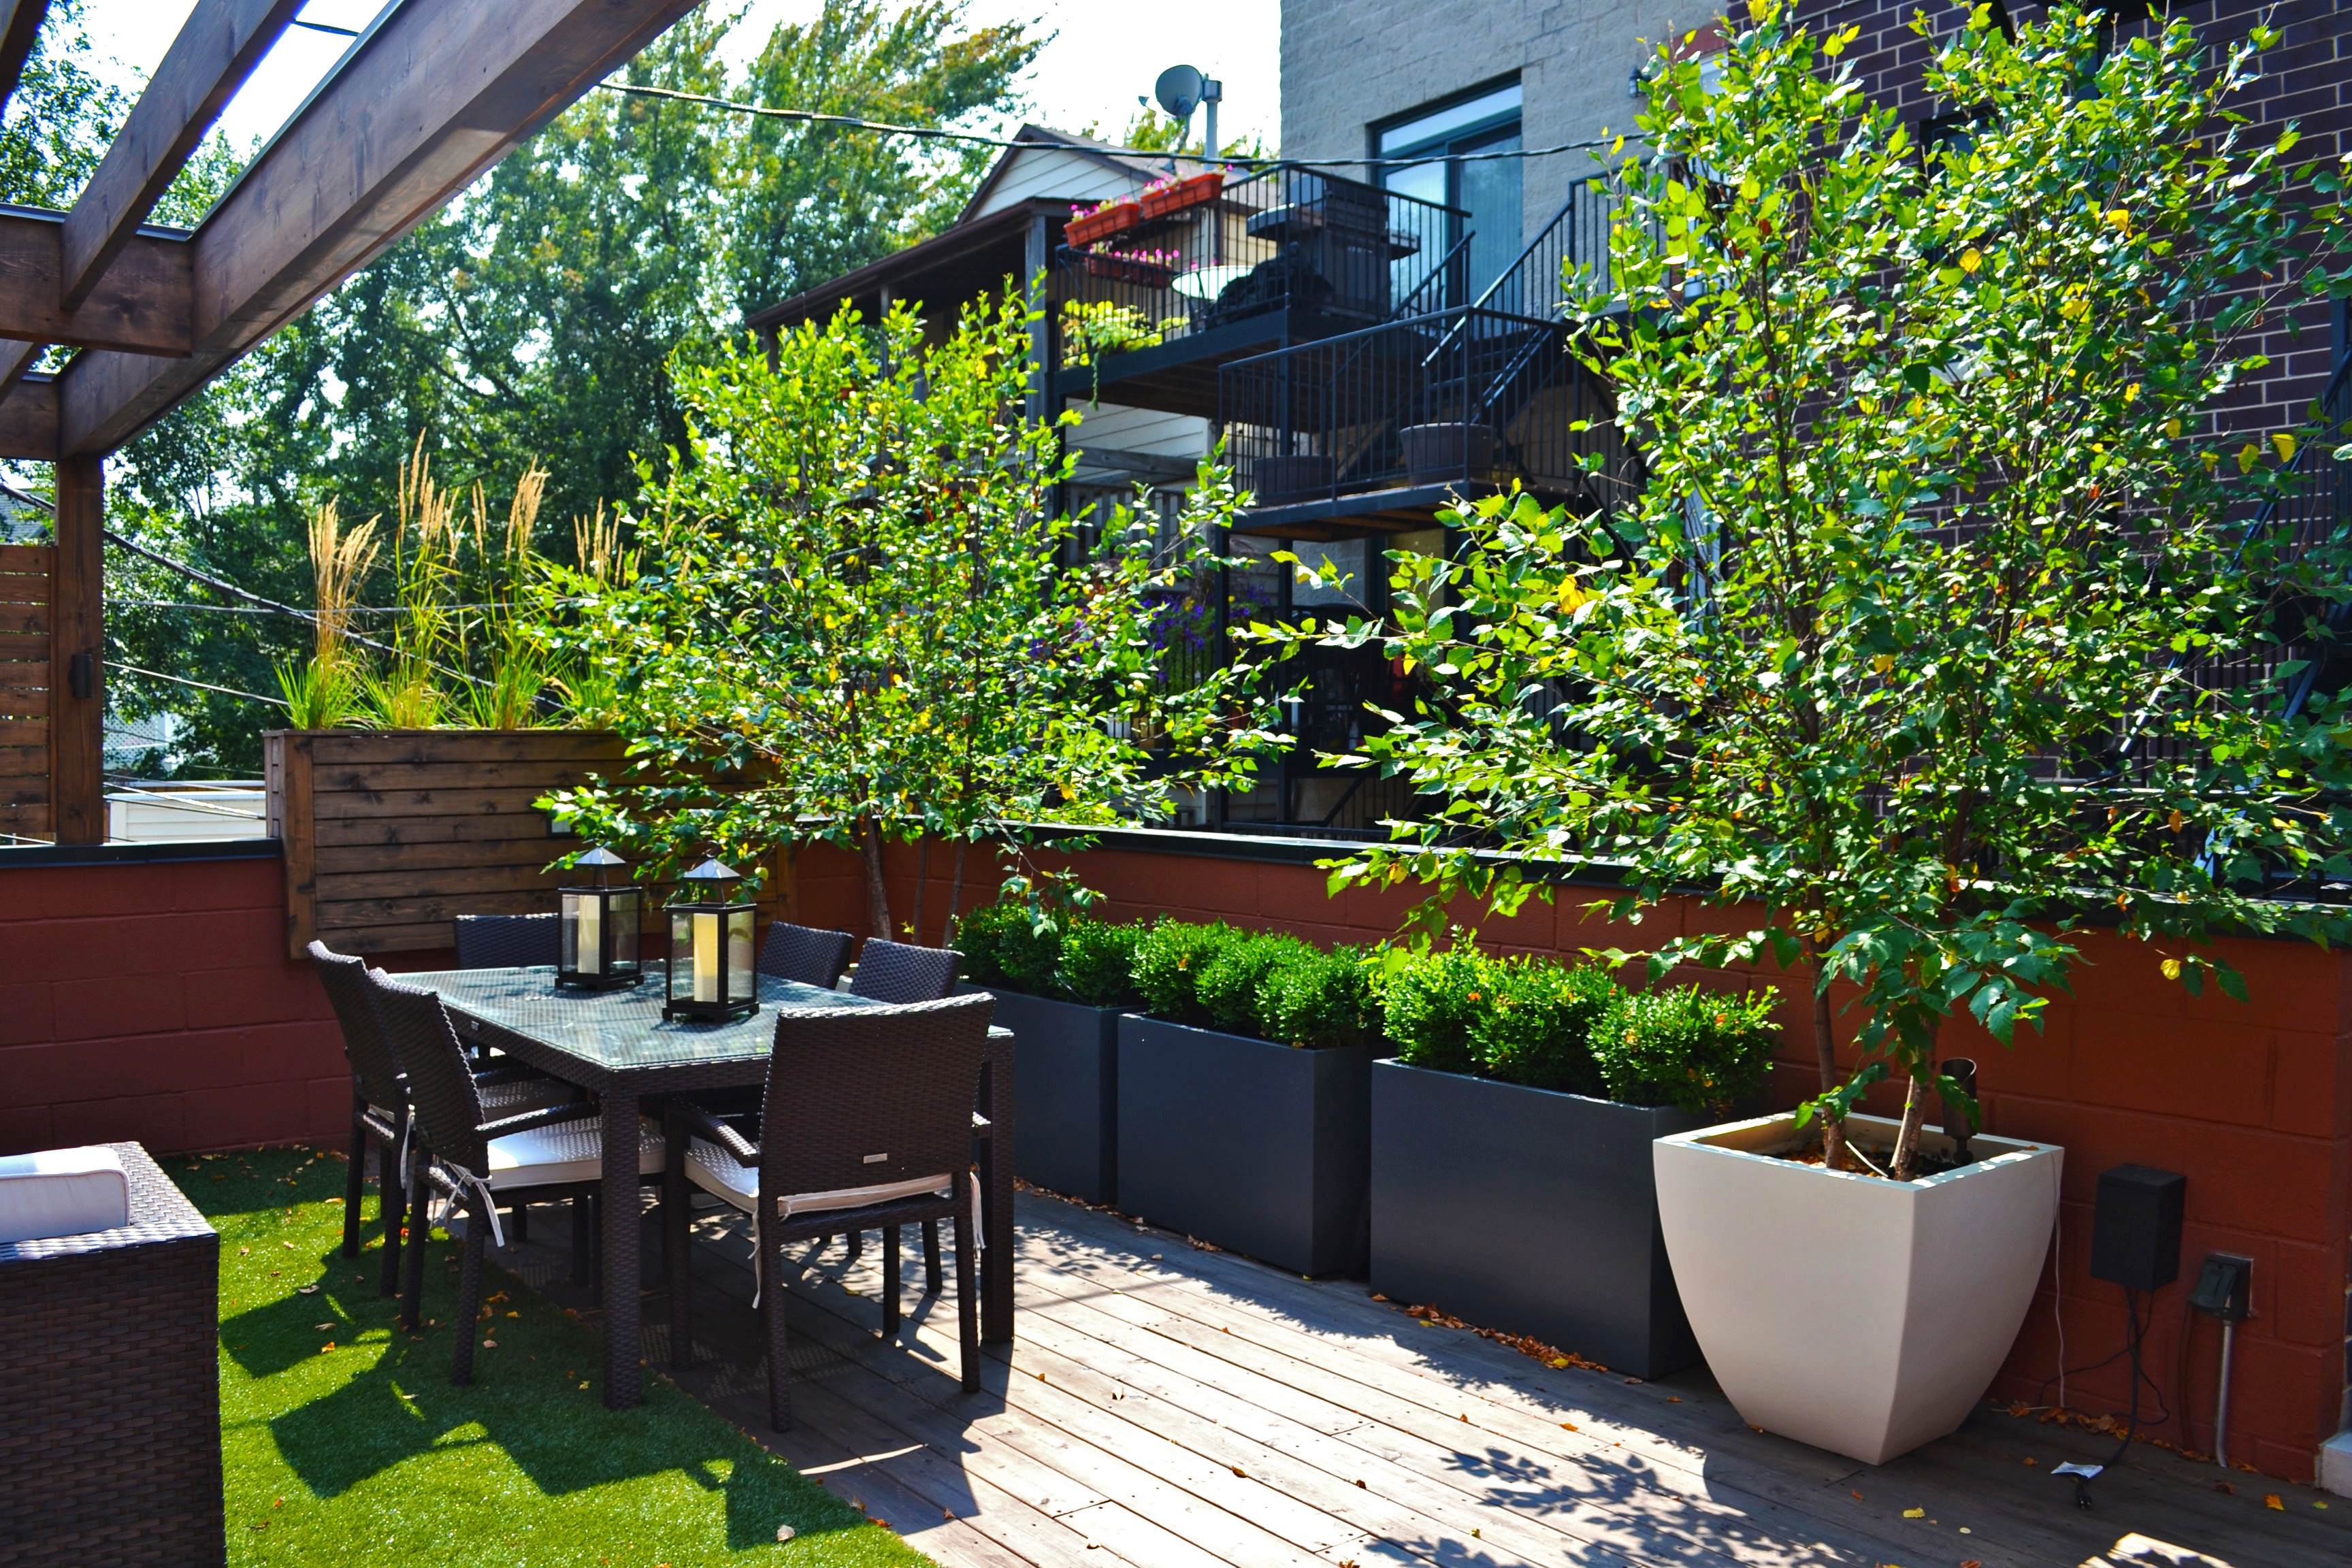 Low Maintenance Landscaping Rooftop Deck Garden And Patio (Image 12 of 30)